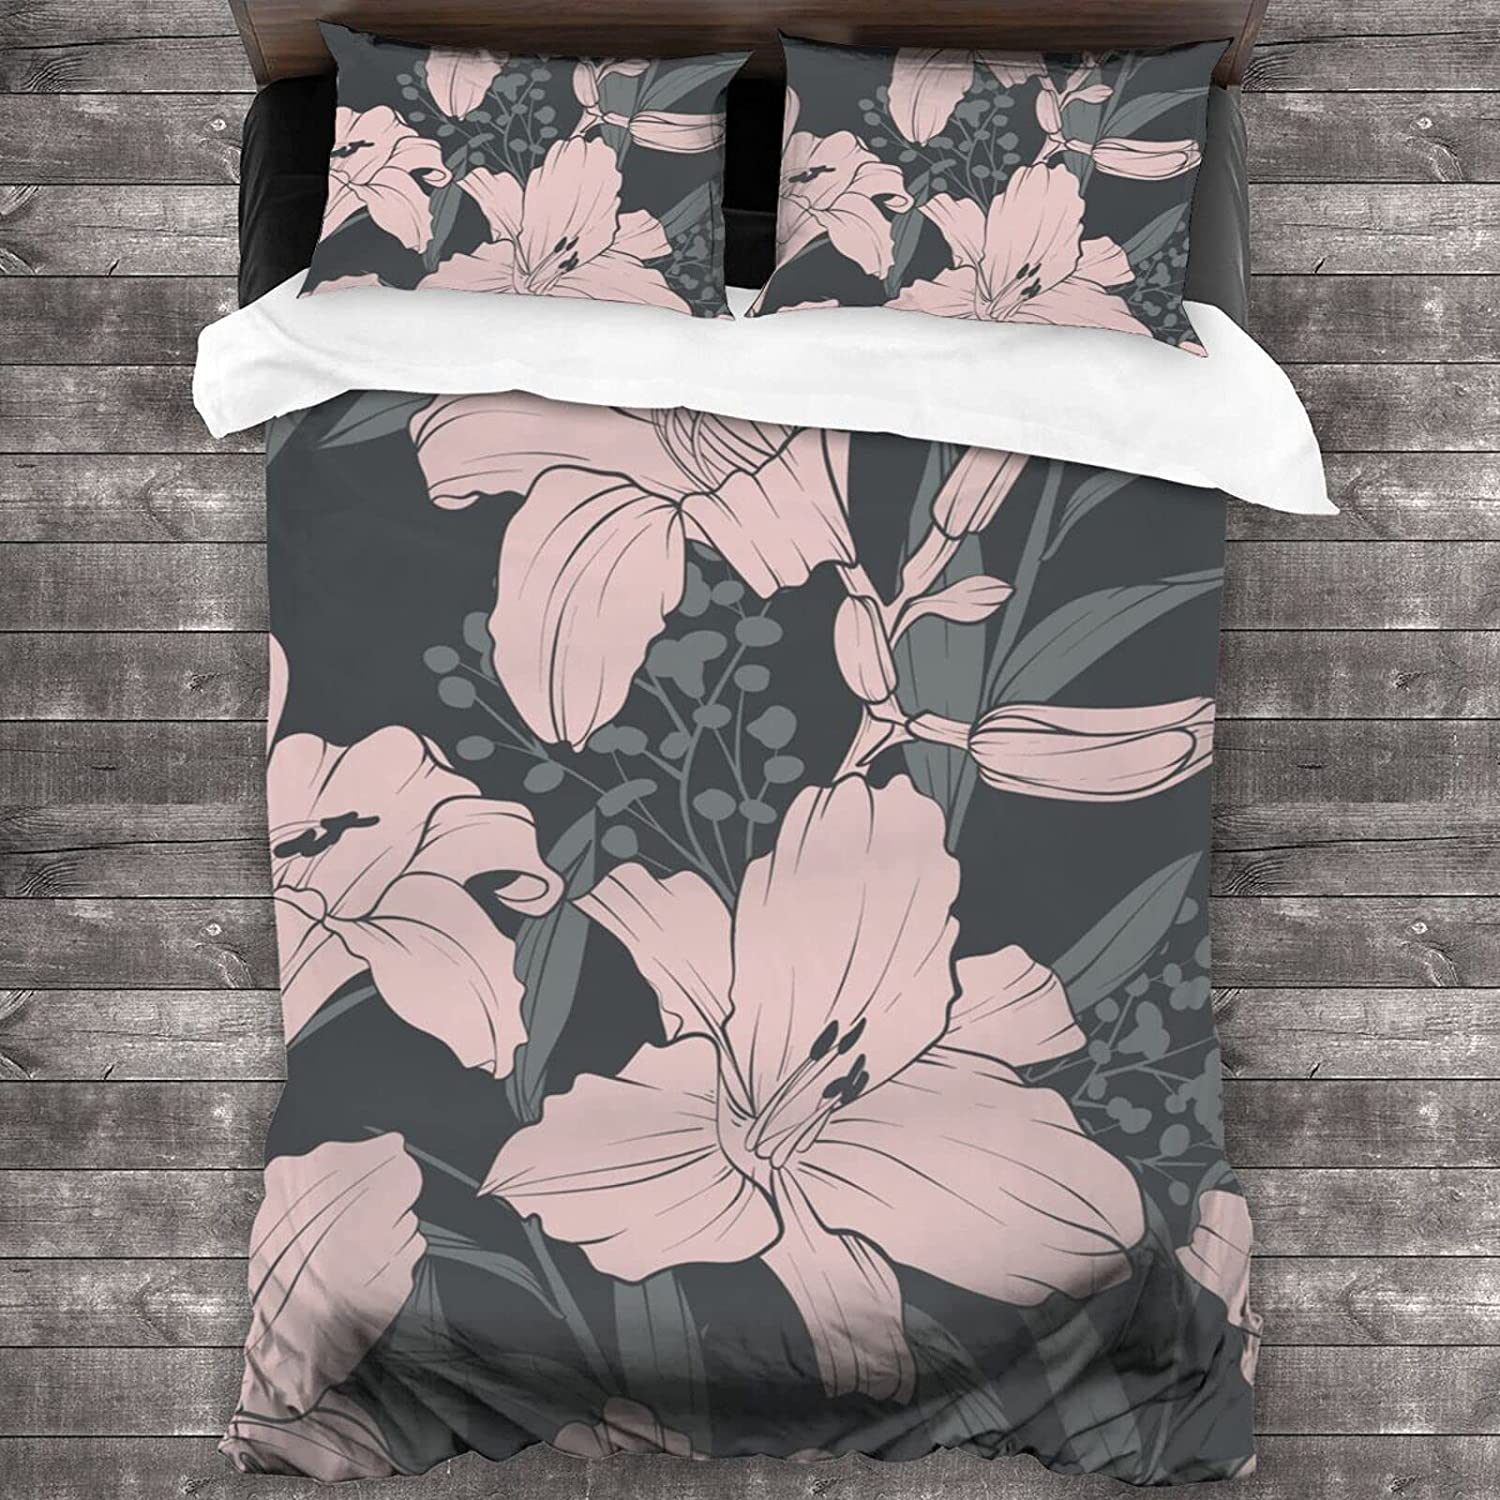 Beautiful Lily Flowers Quilt Set Sets Lightweigh Free Shipping Cheap Bargain Gift Max 48% OFF Bedding 3-Piece